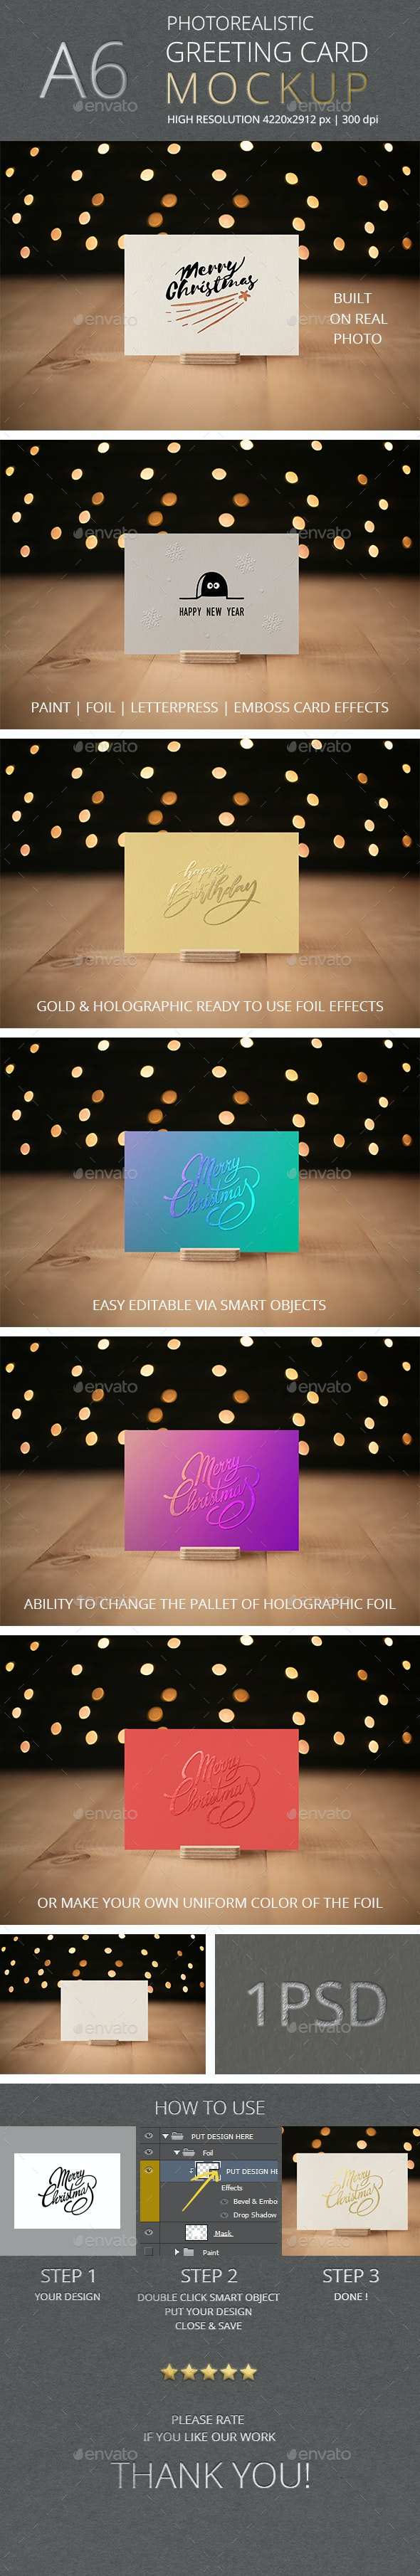 Photorealistic Invitation & Greeting Card Mockup Vol 6.0 / A6 Edition - Miscellaneous Print